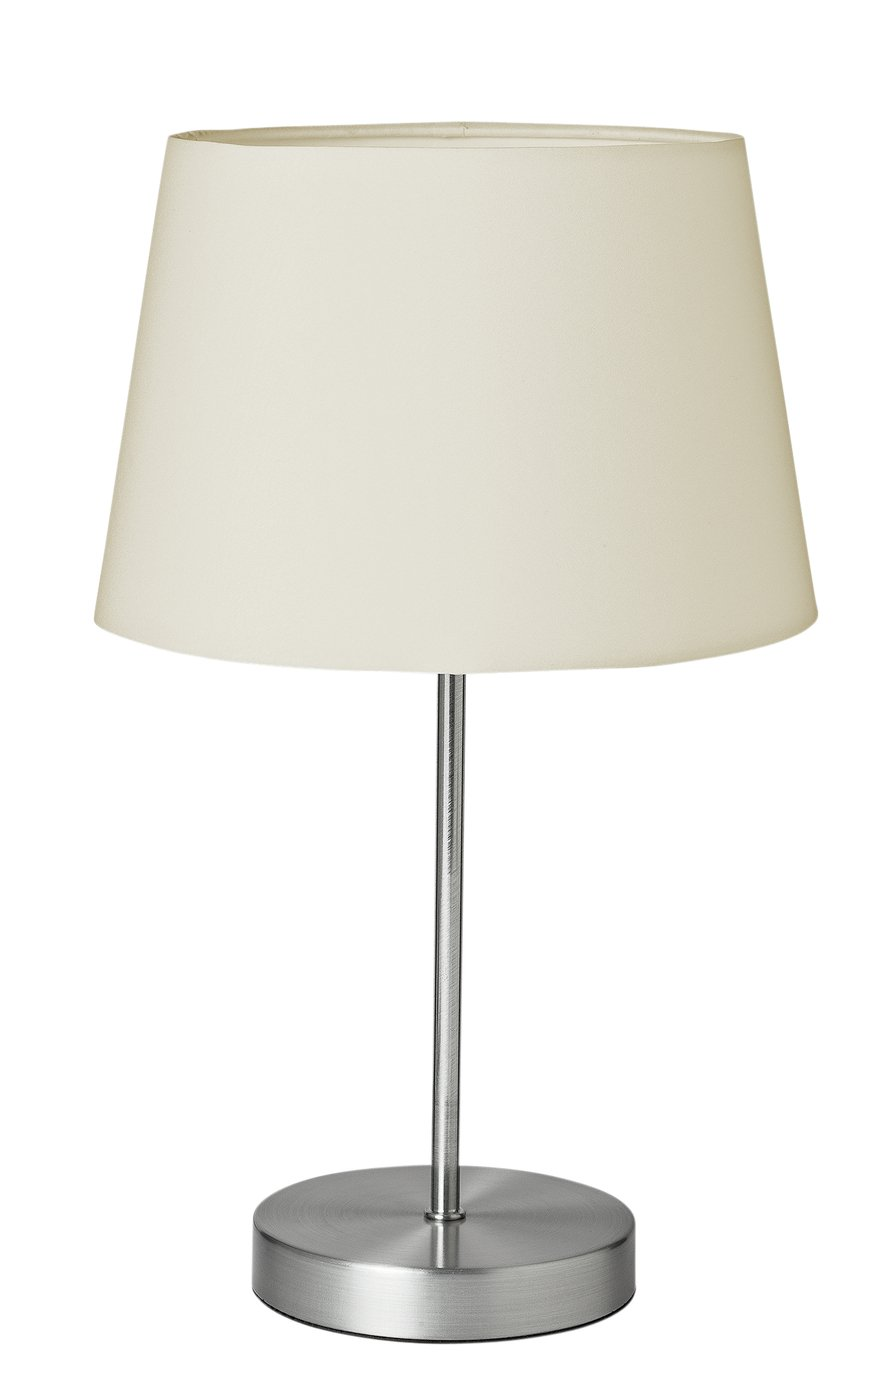 Image of HOME Taper Touch Table Lamp - Cream